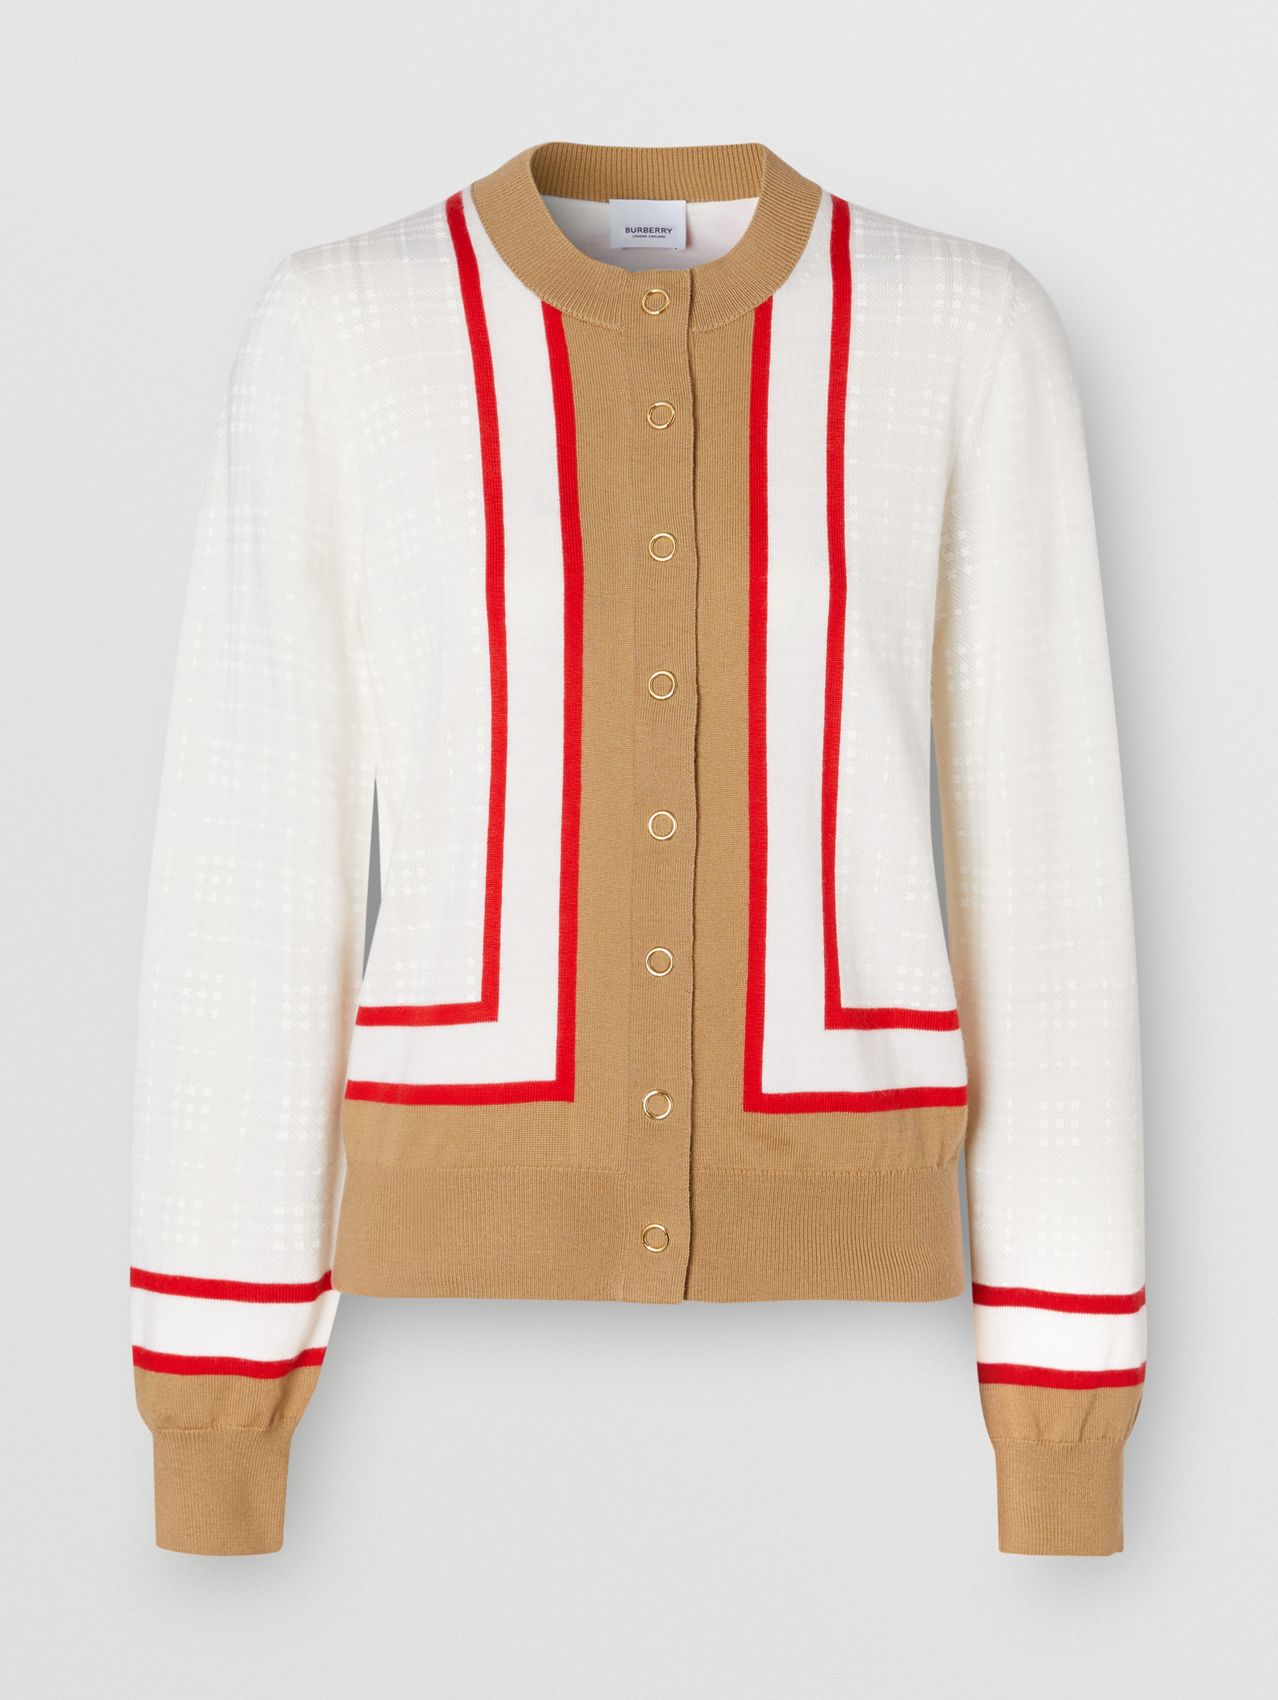 Archive Society Intarsia Wool Cardigan (White)